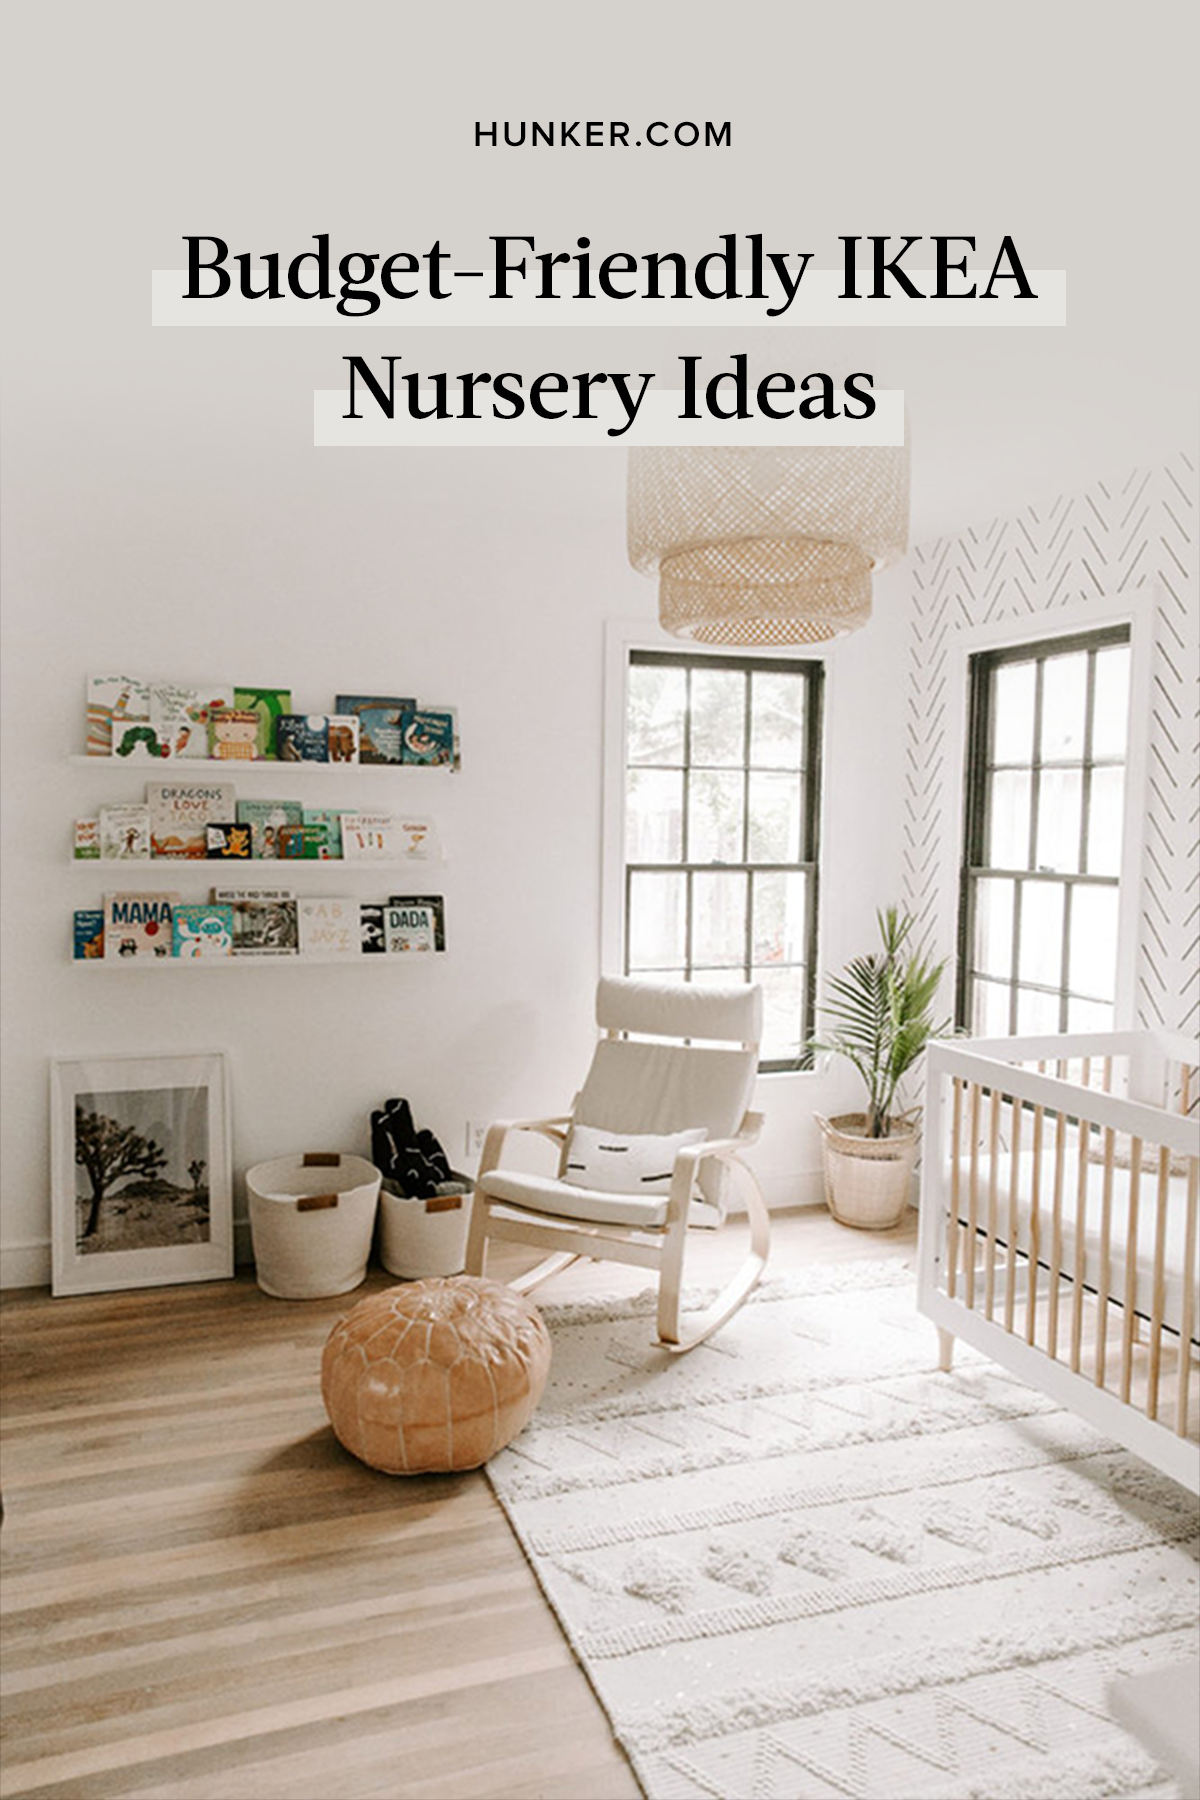 From late-night feedings to tummy-time workouts to restful slumbers, this sanctuary gets a lot of use, and its design needs to be practical as well as stylish. Here are 10 IKEA nursery ideas. #hunkerhome #ikea #nursery #nurseryideas #ikeanursery